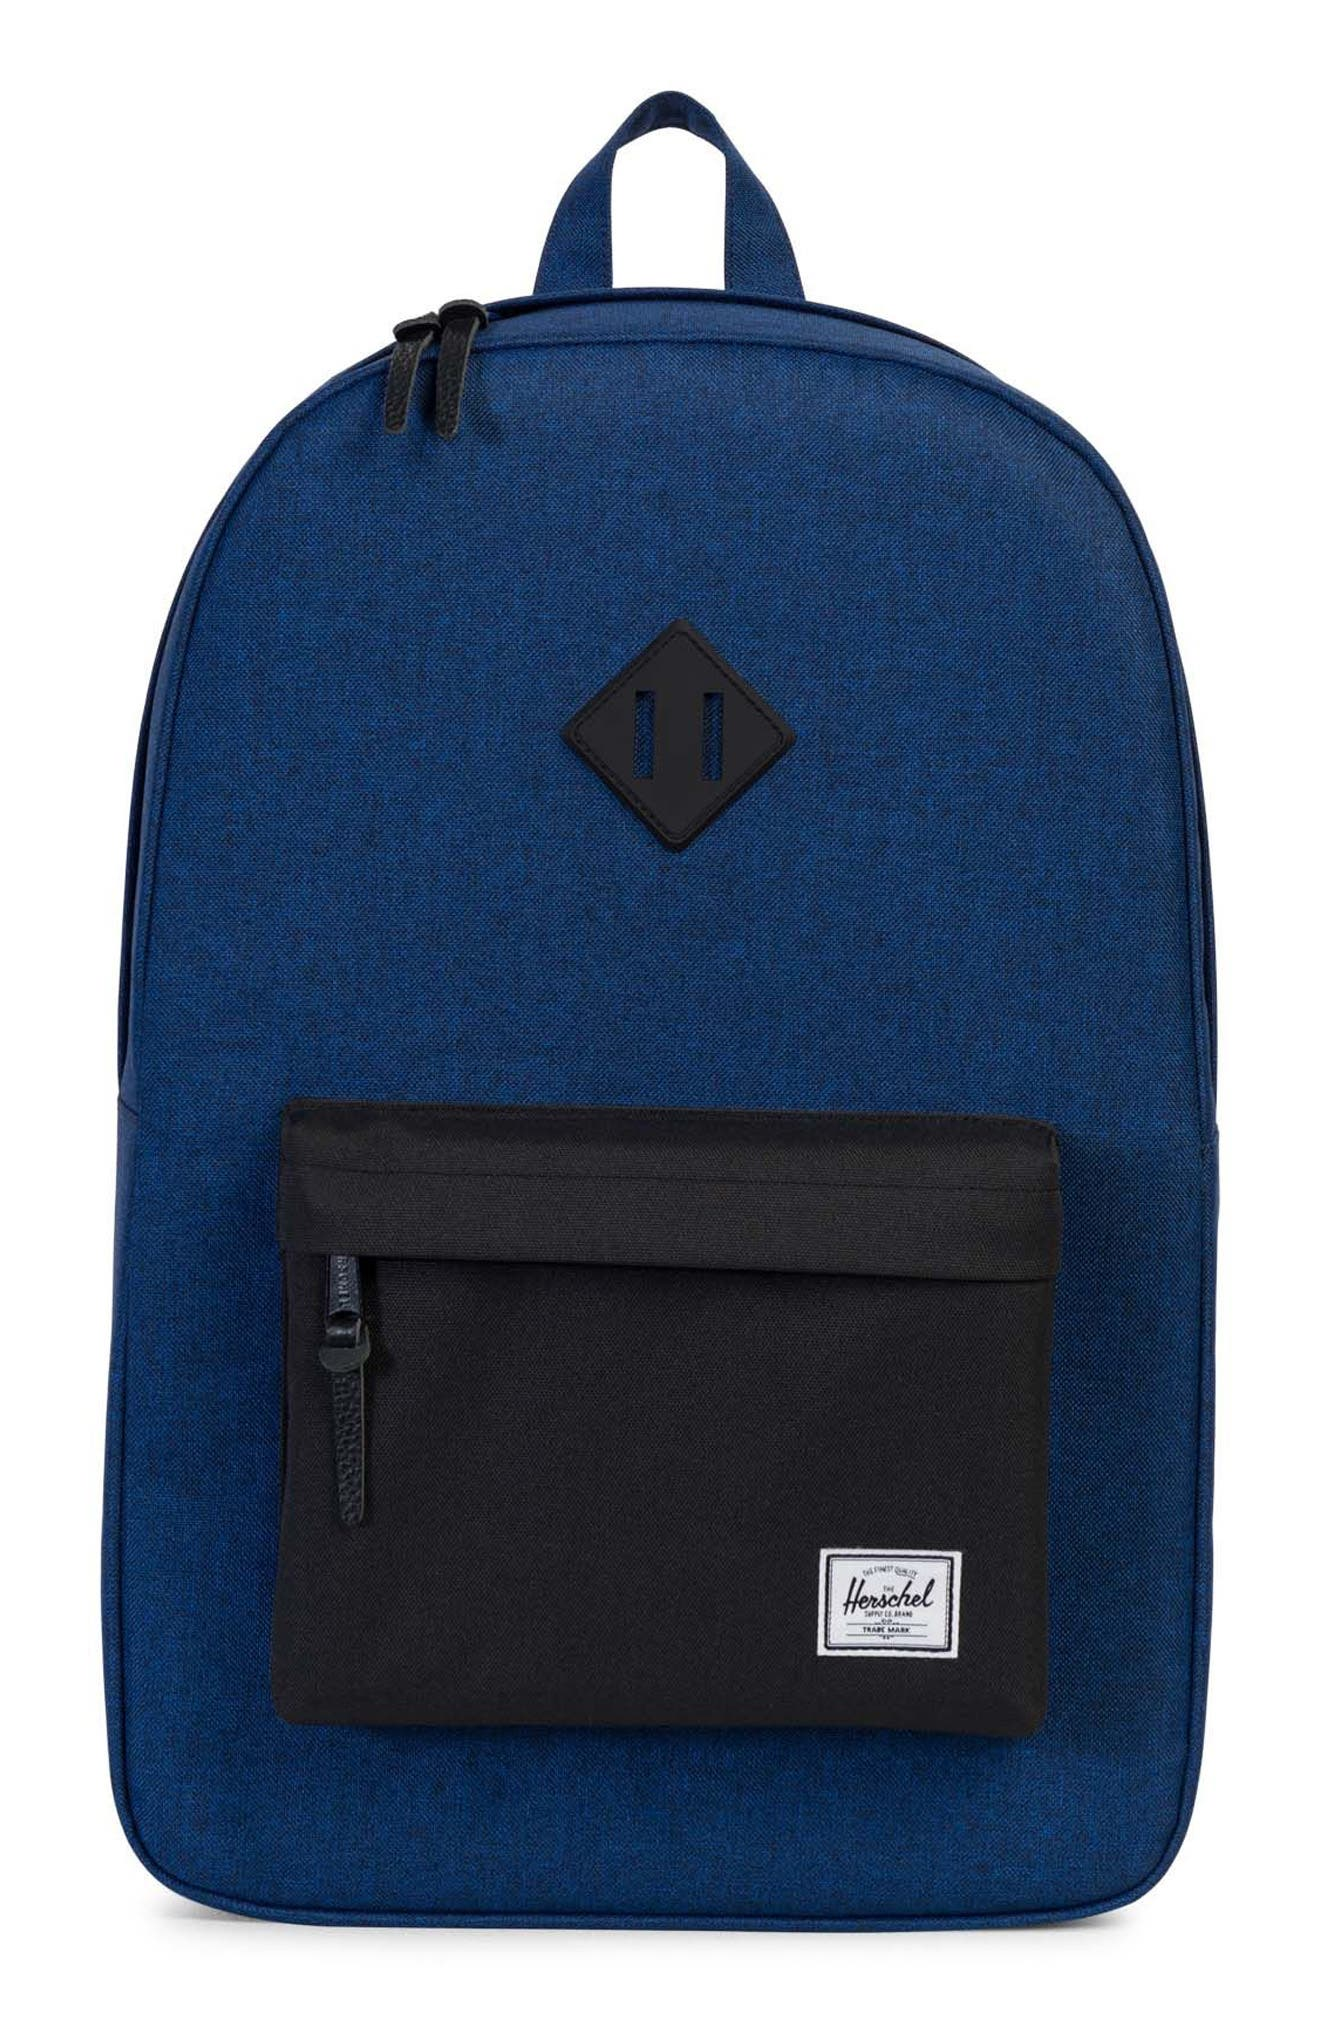 Heritage Backpack,                             Main thumbnail 1, color,                             Eclipse Crosshatch/ Black